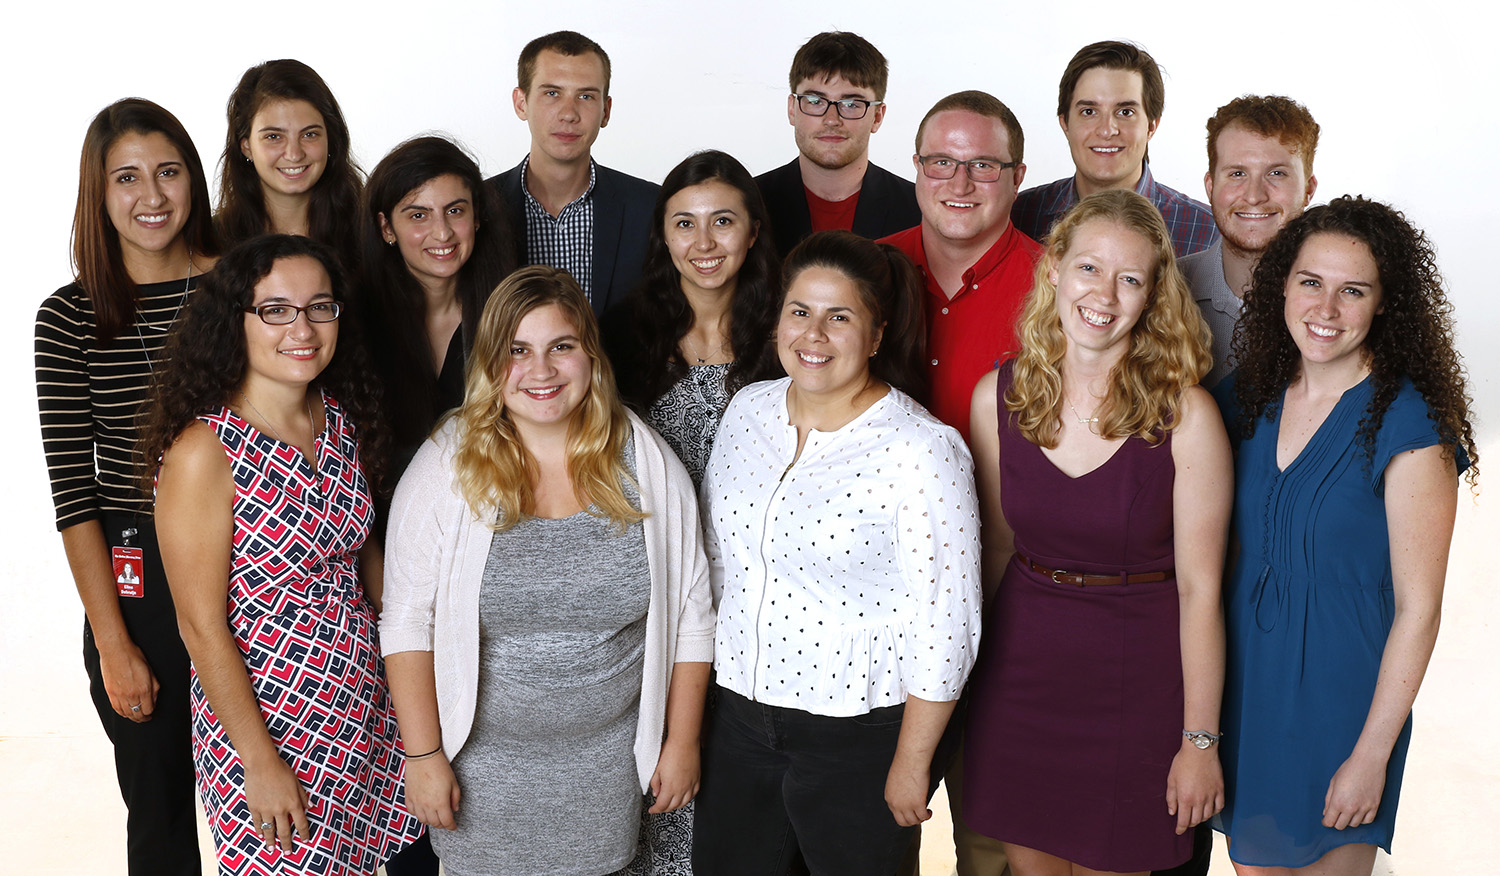 This year's college and high school summer interns at the Dallas Morning News. (Credit: David Woo/Dallas Morning News)